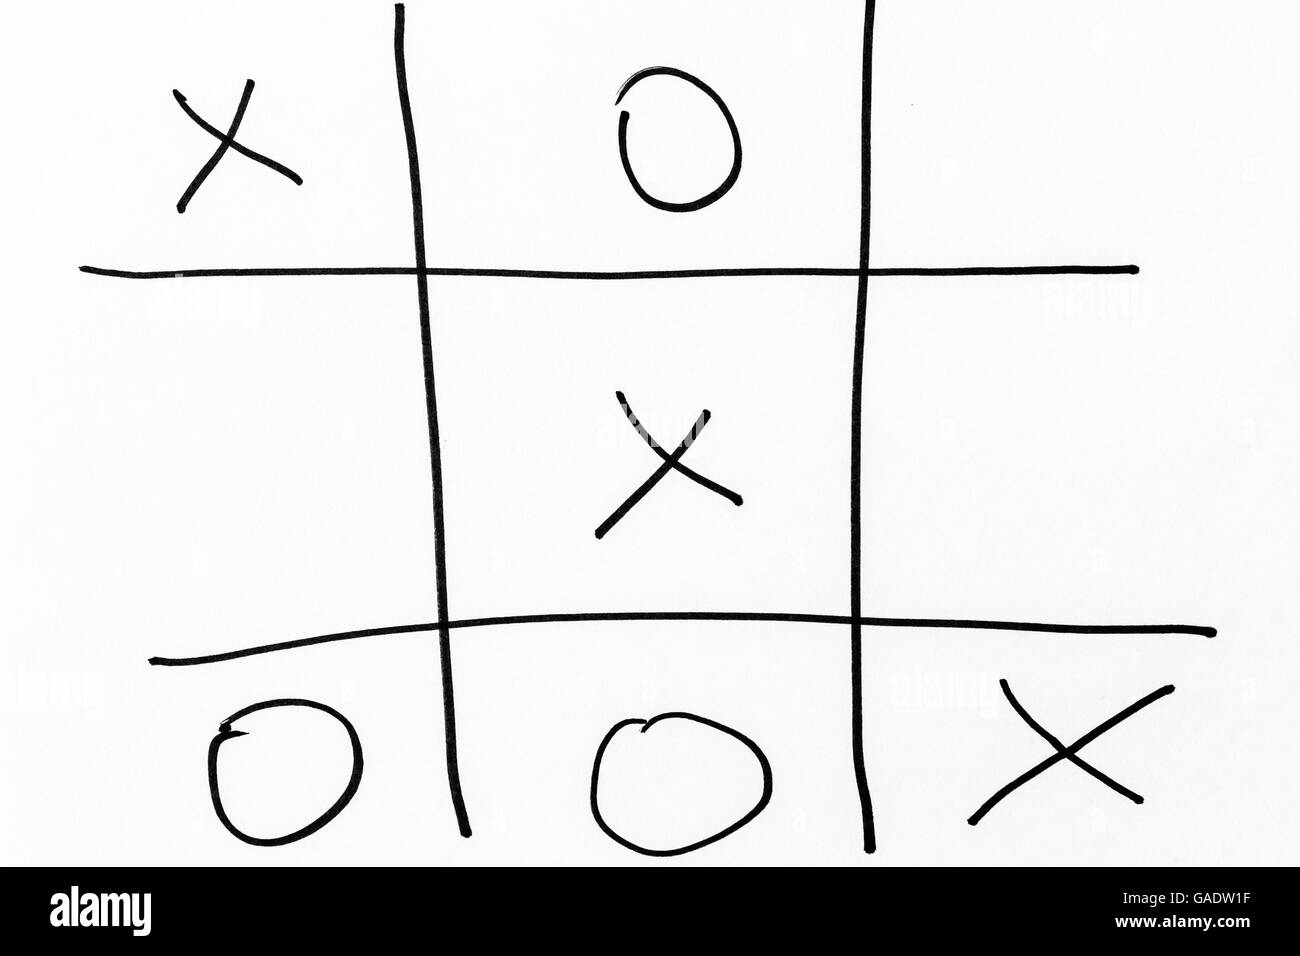 La main d'un tic-tac-toe grille jeu Photo Stock